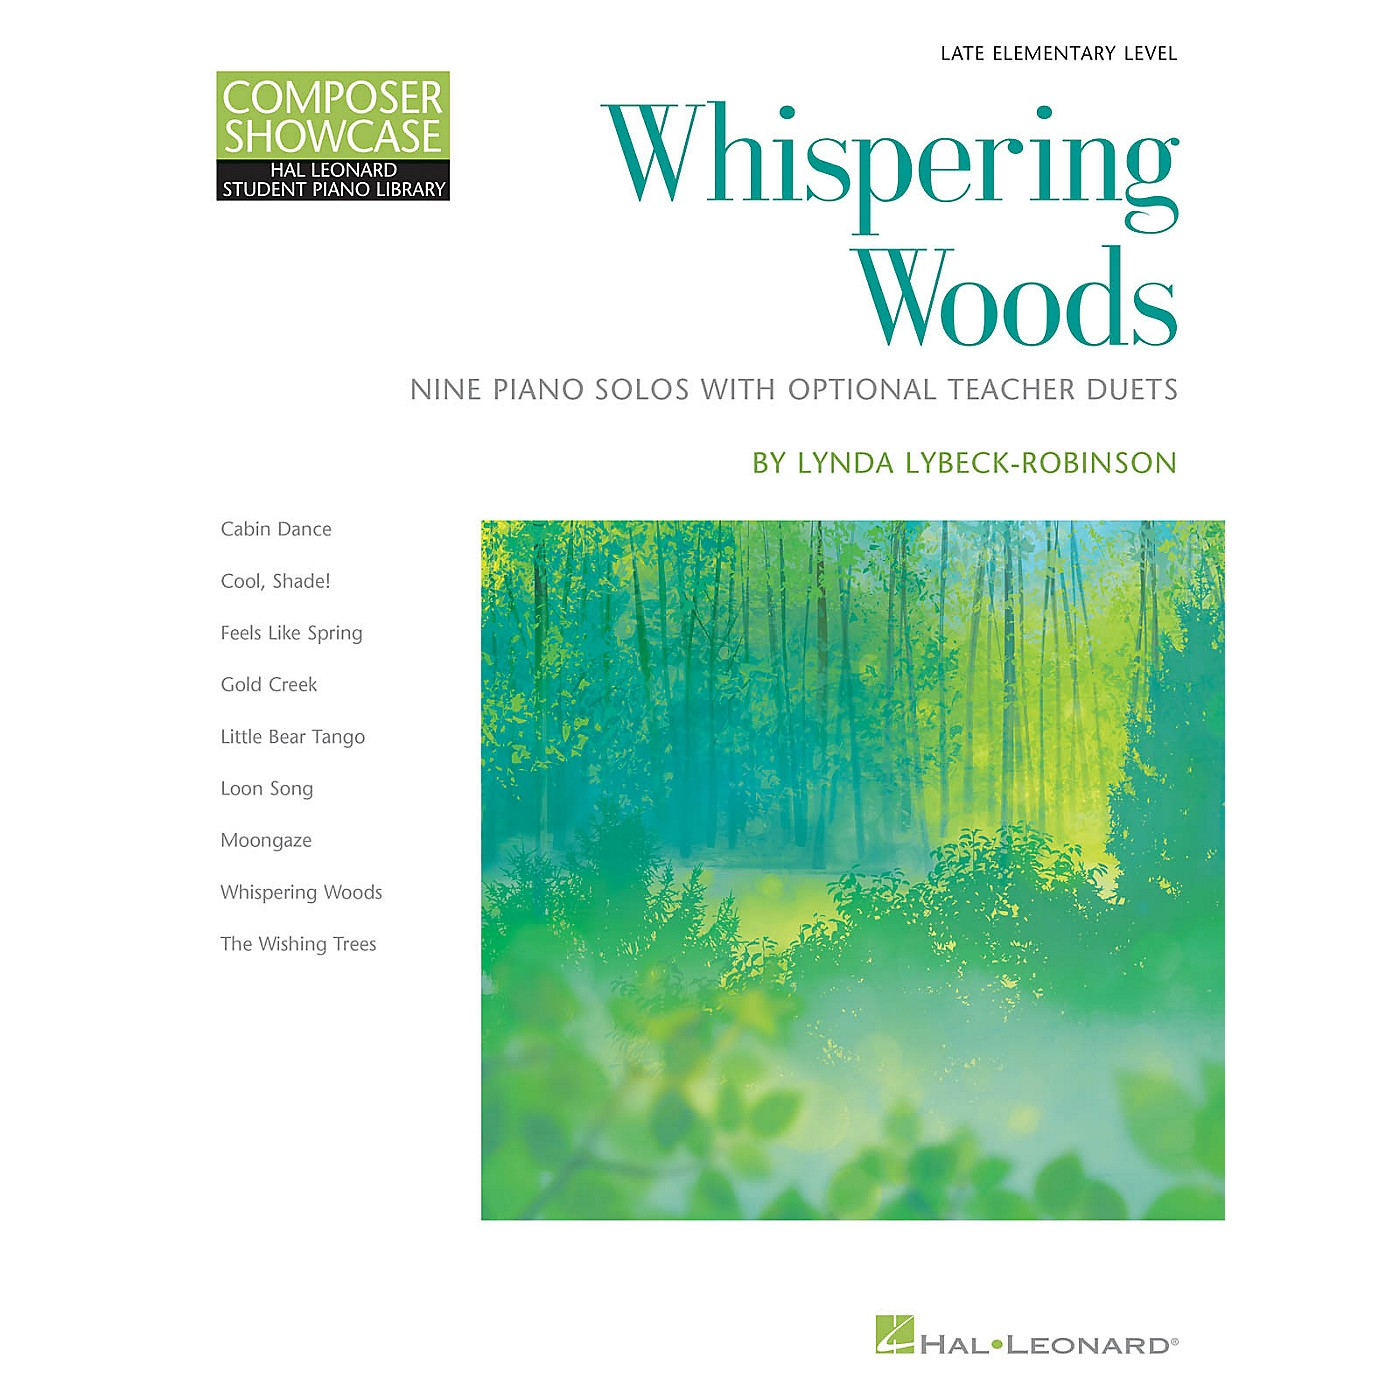 Hal Leonard Whispering Woods - 9 Piano Solos with Optional Teacher Duets Late Elementary Level thumbnail